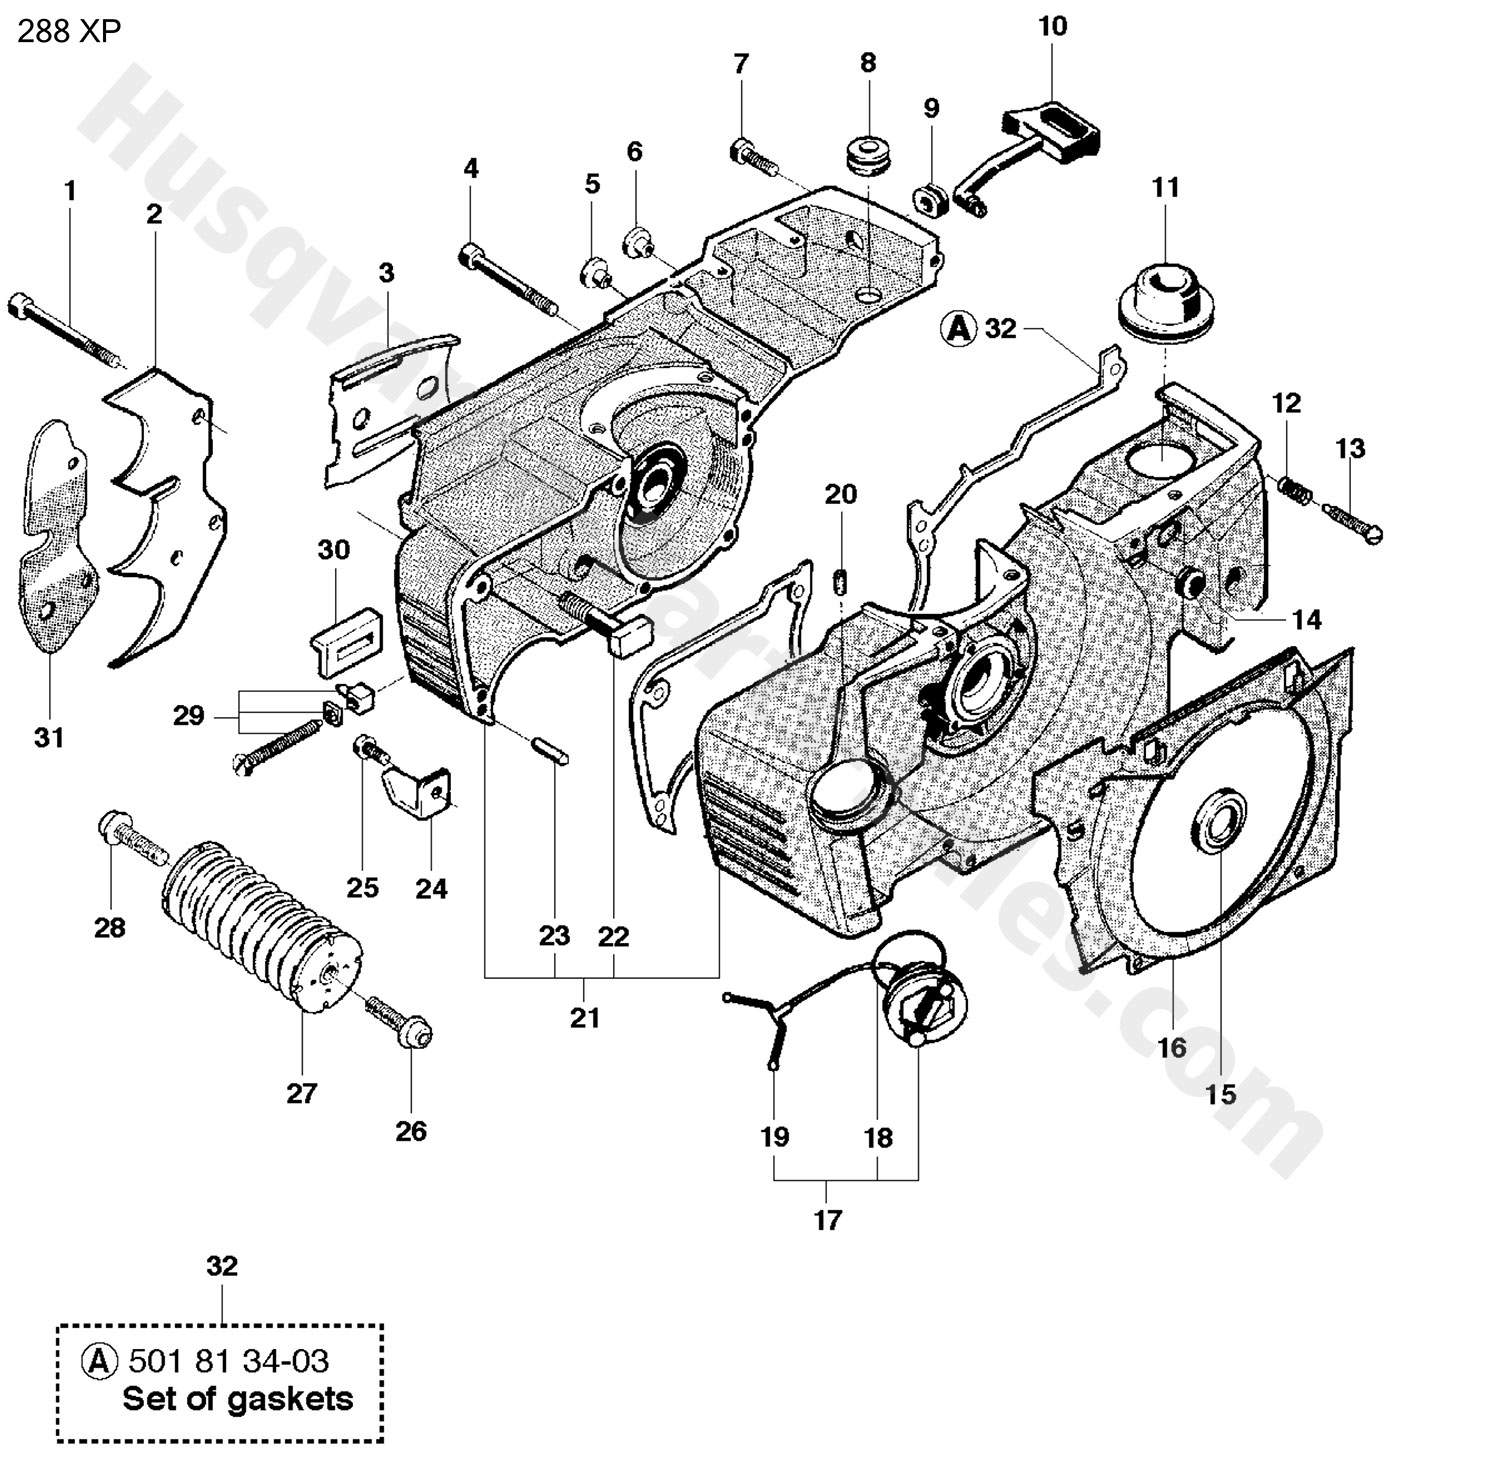 Ford Repment Parts Diagram Ford Auto Wiring Diagram